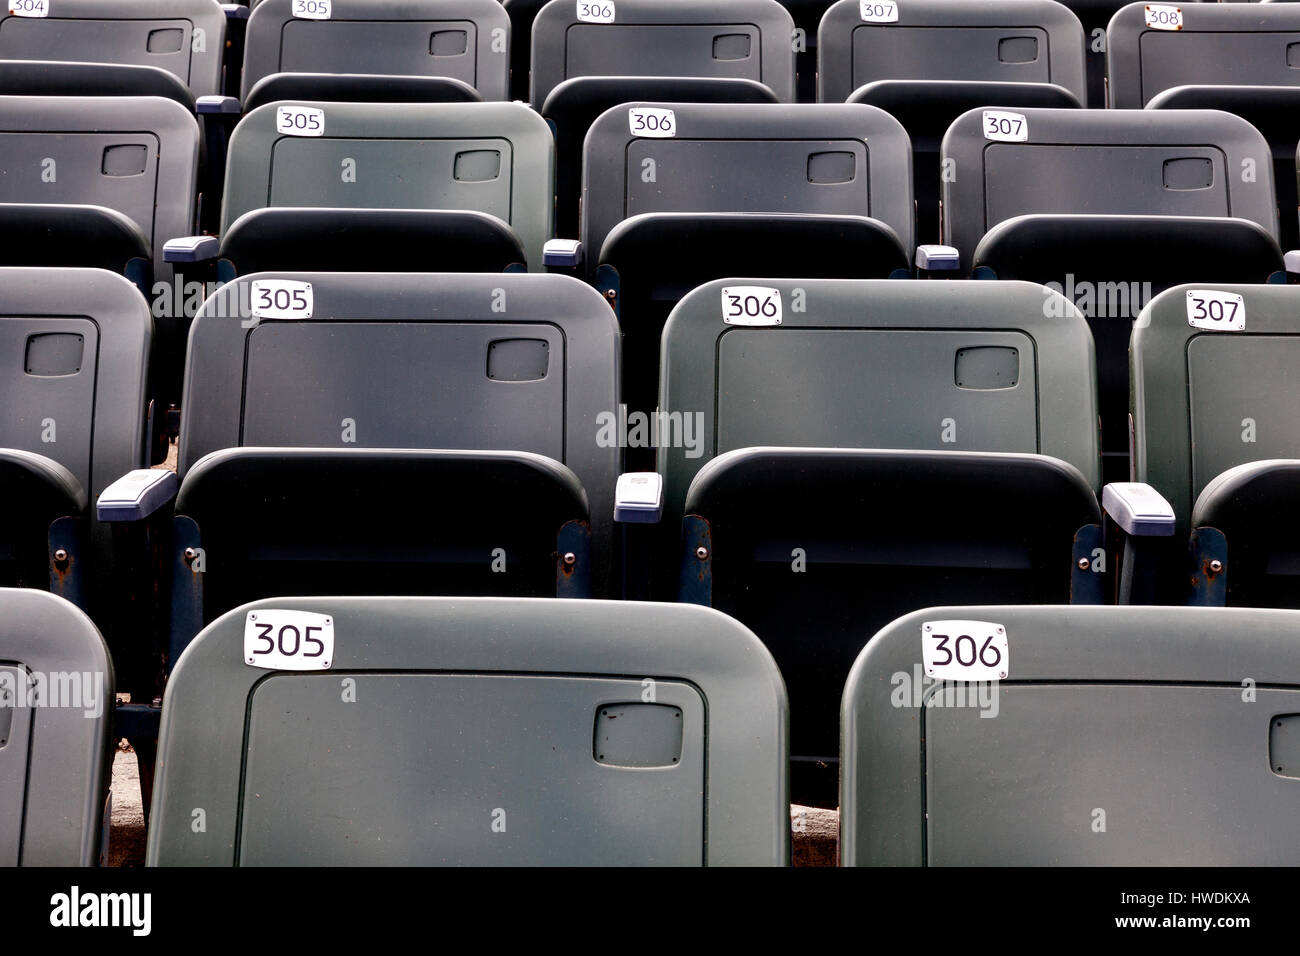 NC00638-00...NORTH CAROLINA - Rows of seats for the Lost Colony Theater at Fort Raleigh National Historic Site on - Stock Image